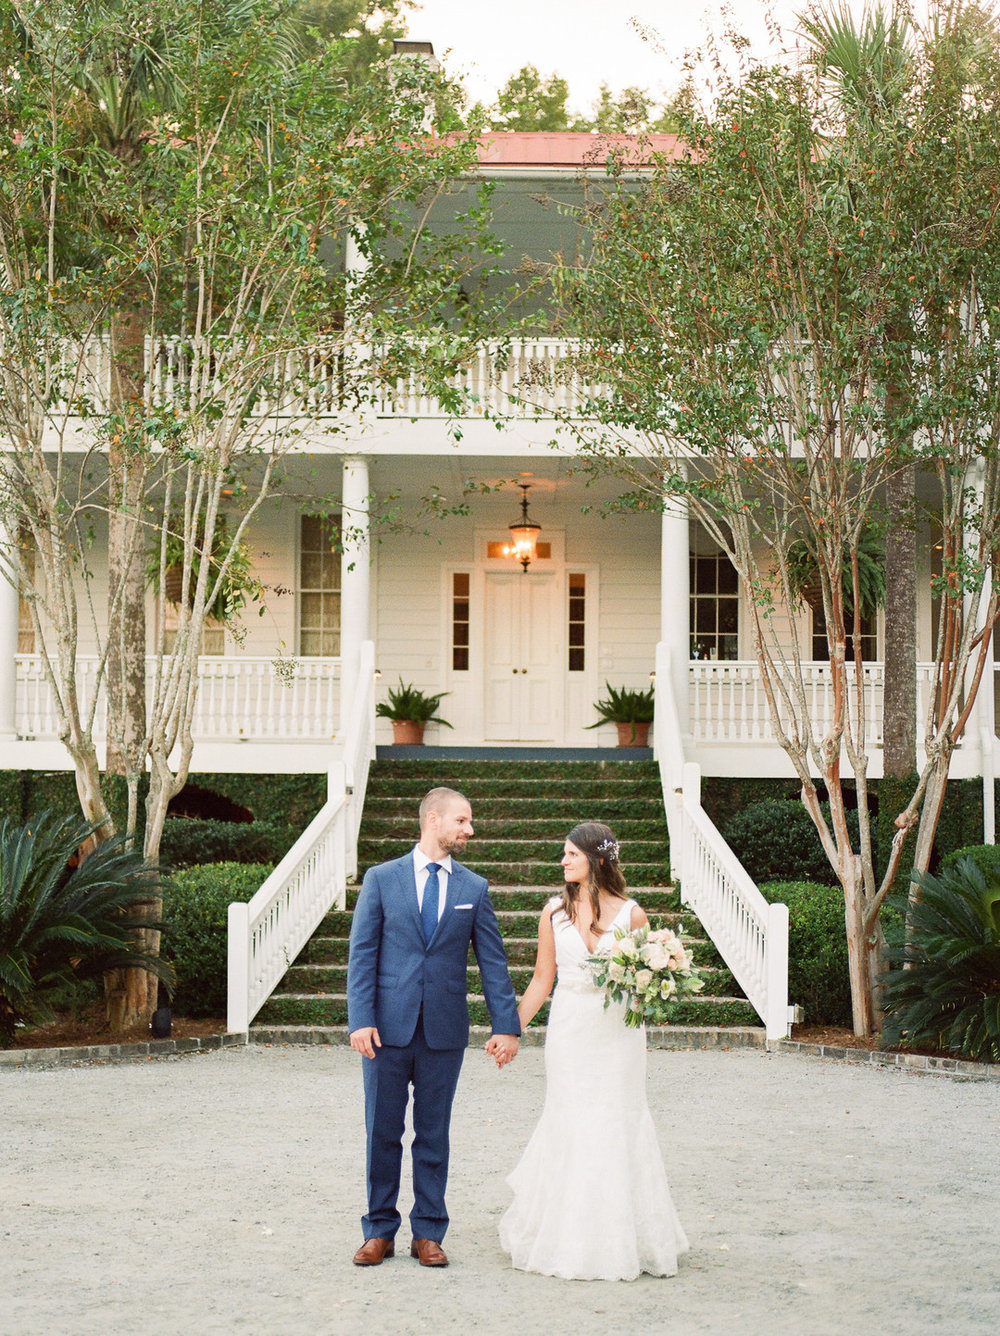 old-wide-awake-plantation-wedding-22.jpg